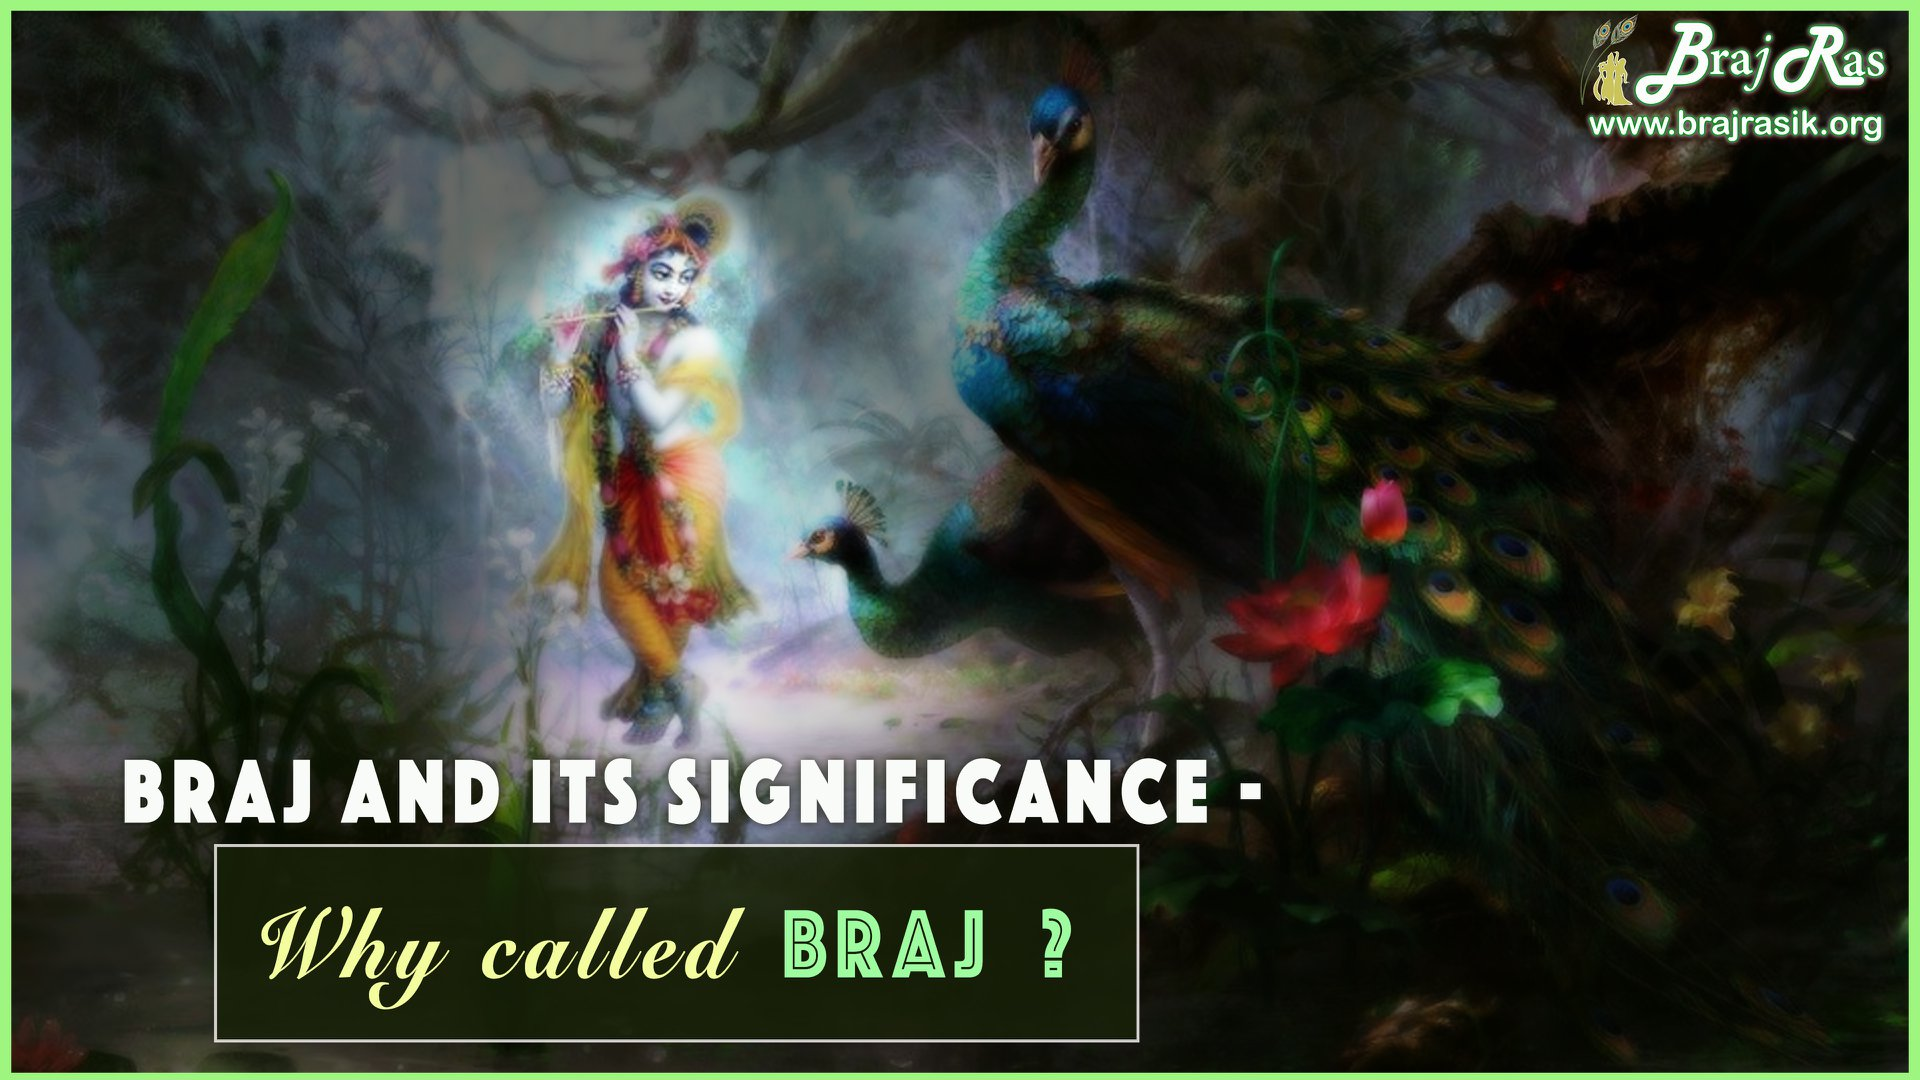 Braj and its significance - Why called Braj?